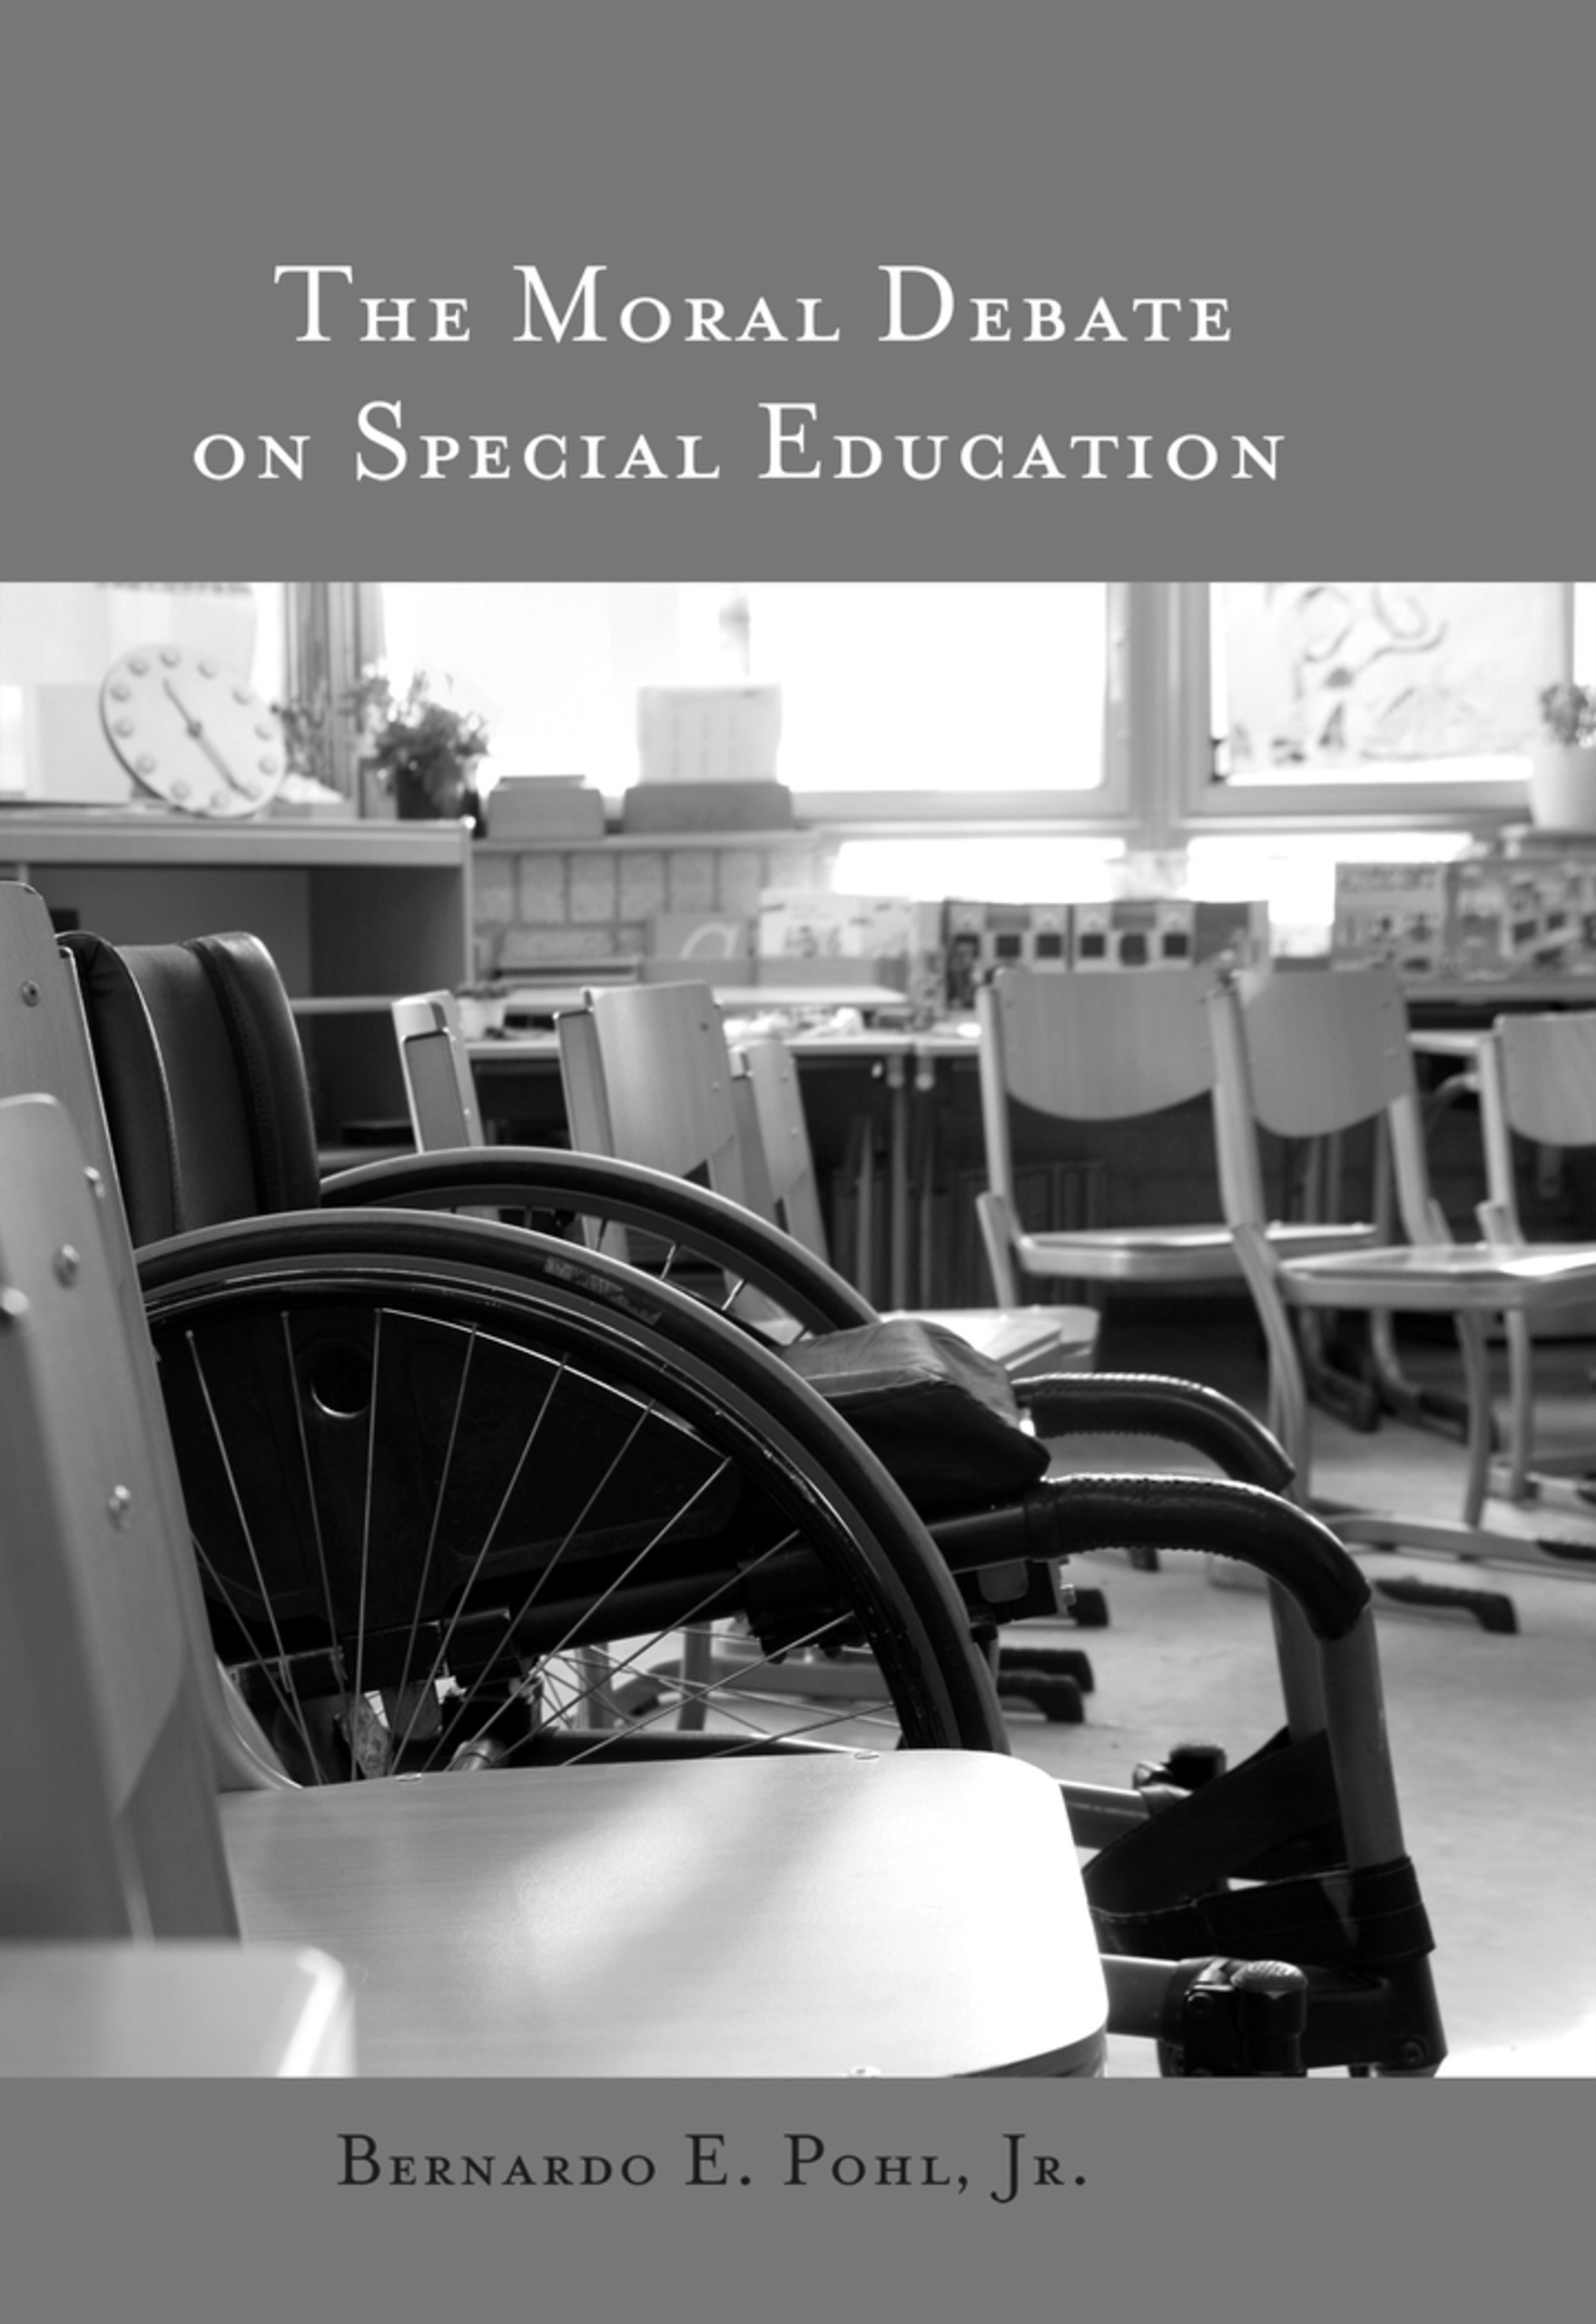 Title: The Moral Debate on Special Education